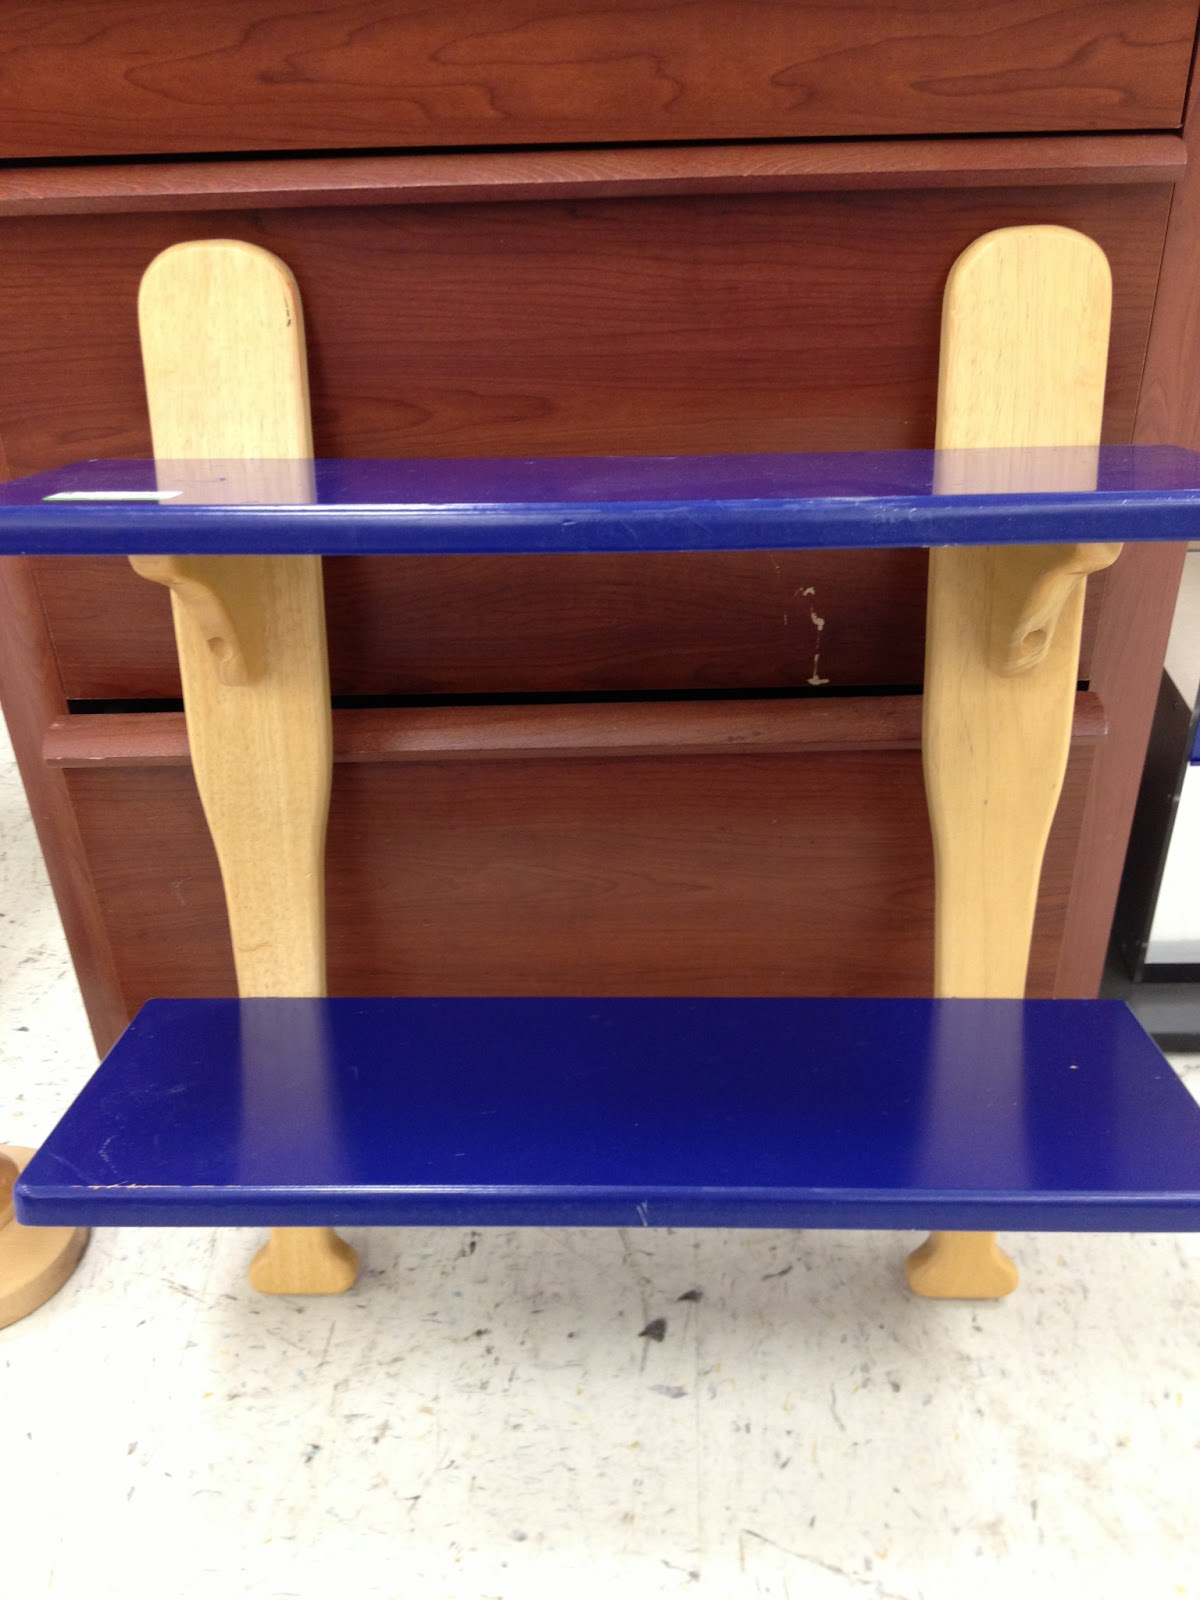 It Was Your Basic Baseball Shelf That Needed Some TLC Had Scratches And Of The Wood Chipped Off On Corners Shelves